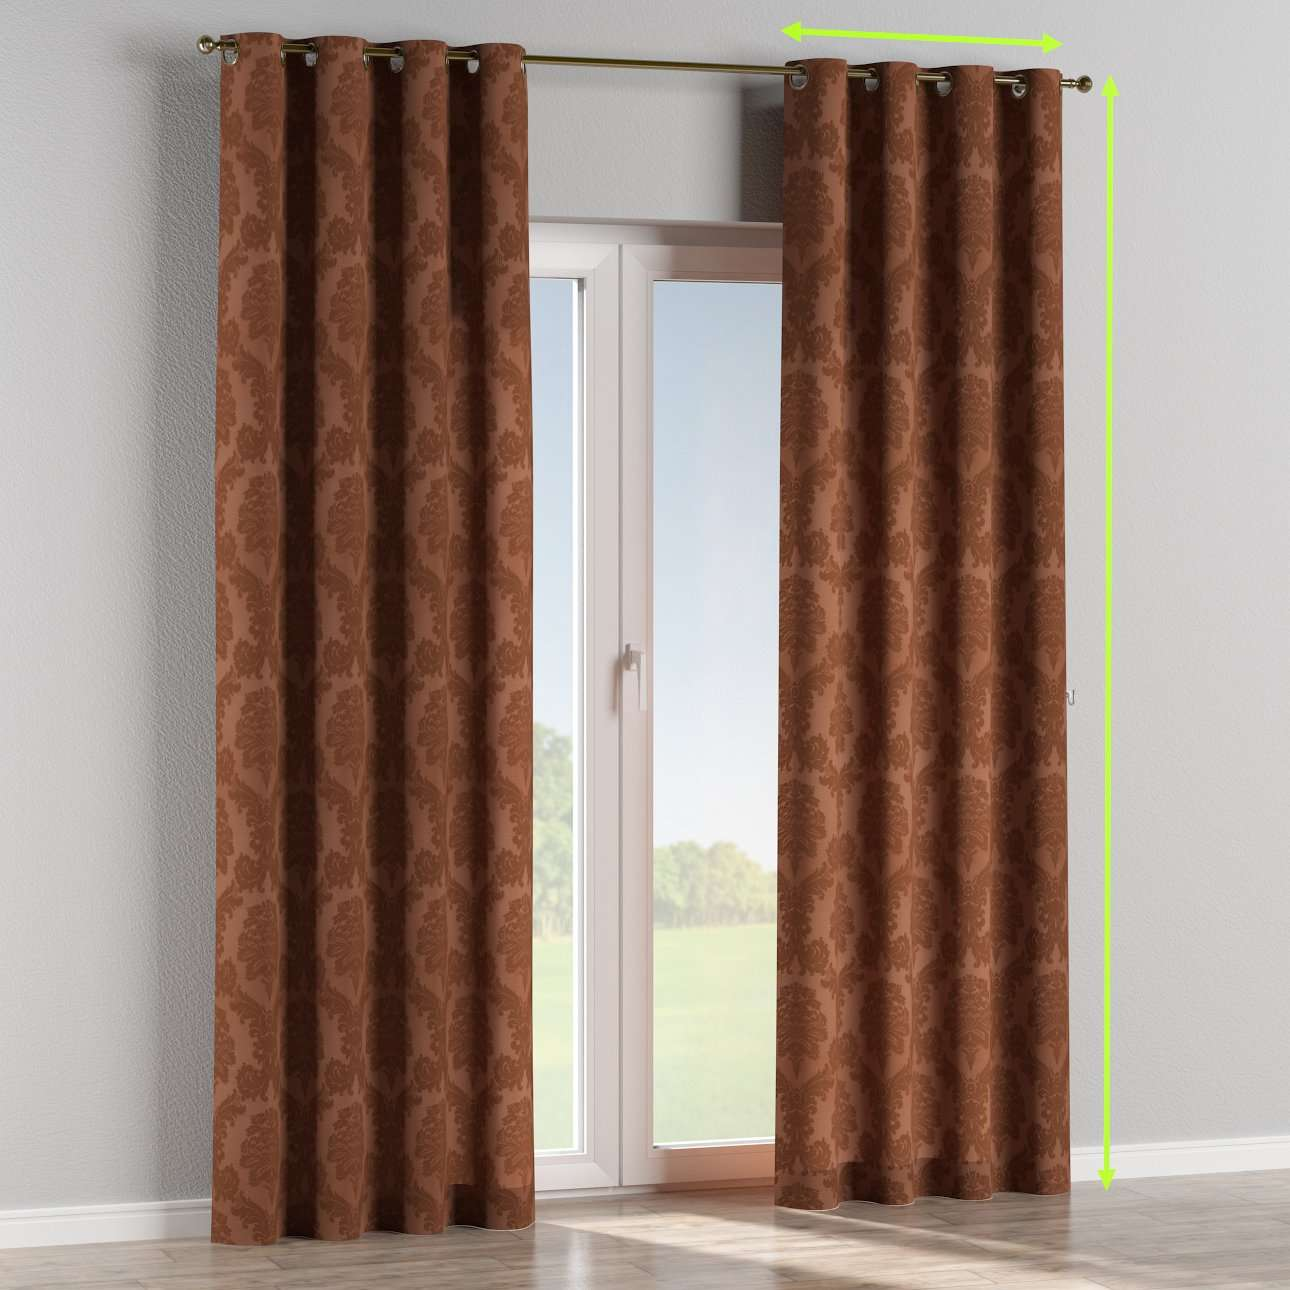 Eyelet curtains in collection Damasco, fabric: 613-88